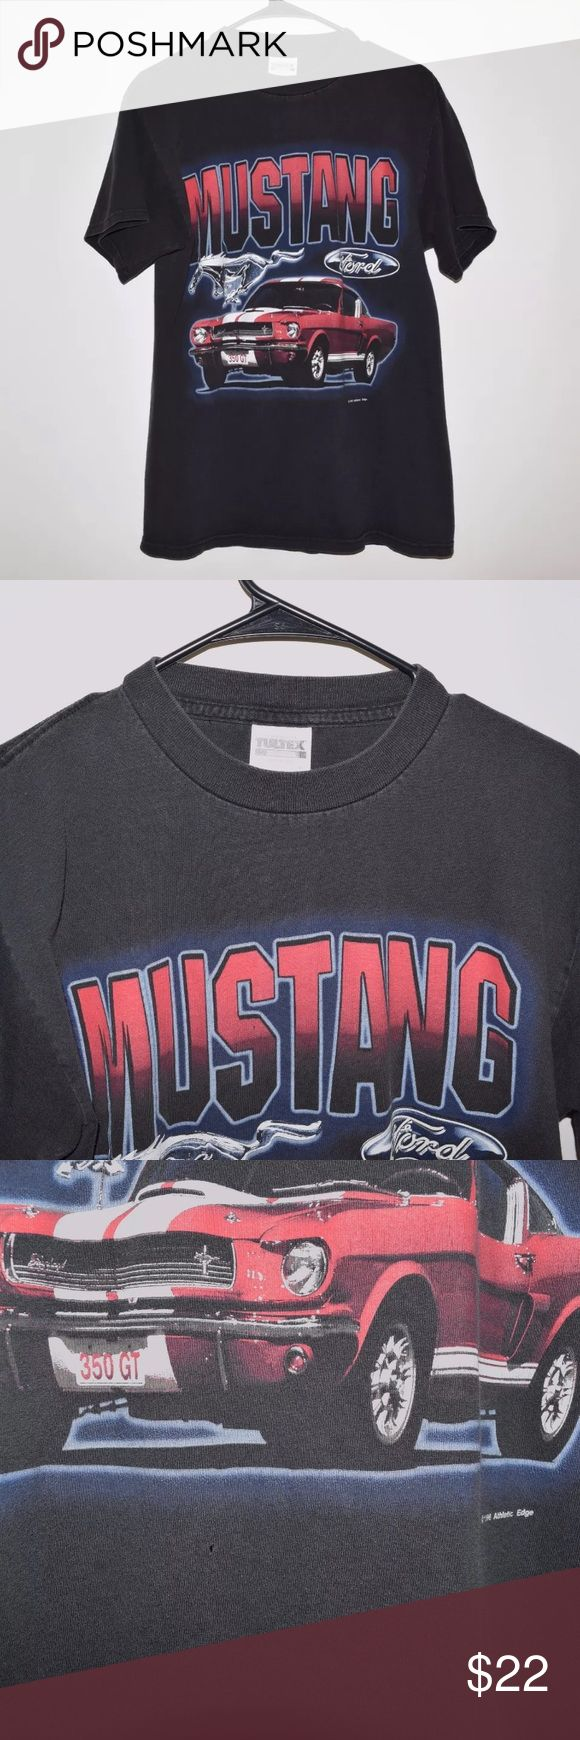 Rare 90 s vintage vtg 1999 ford mustang 350 gt tee